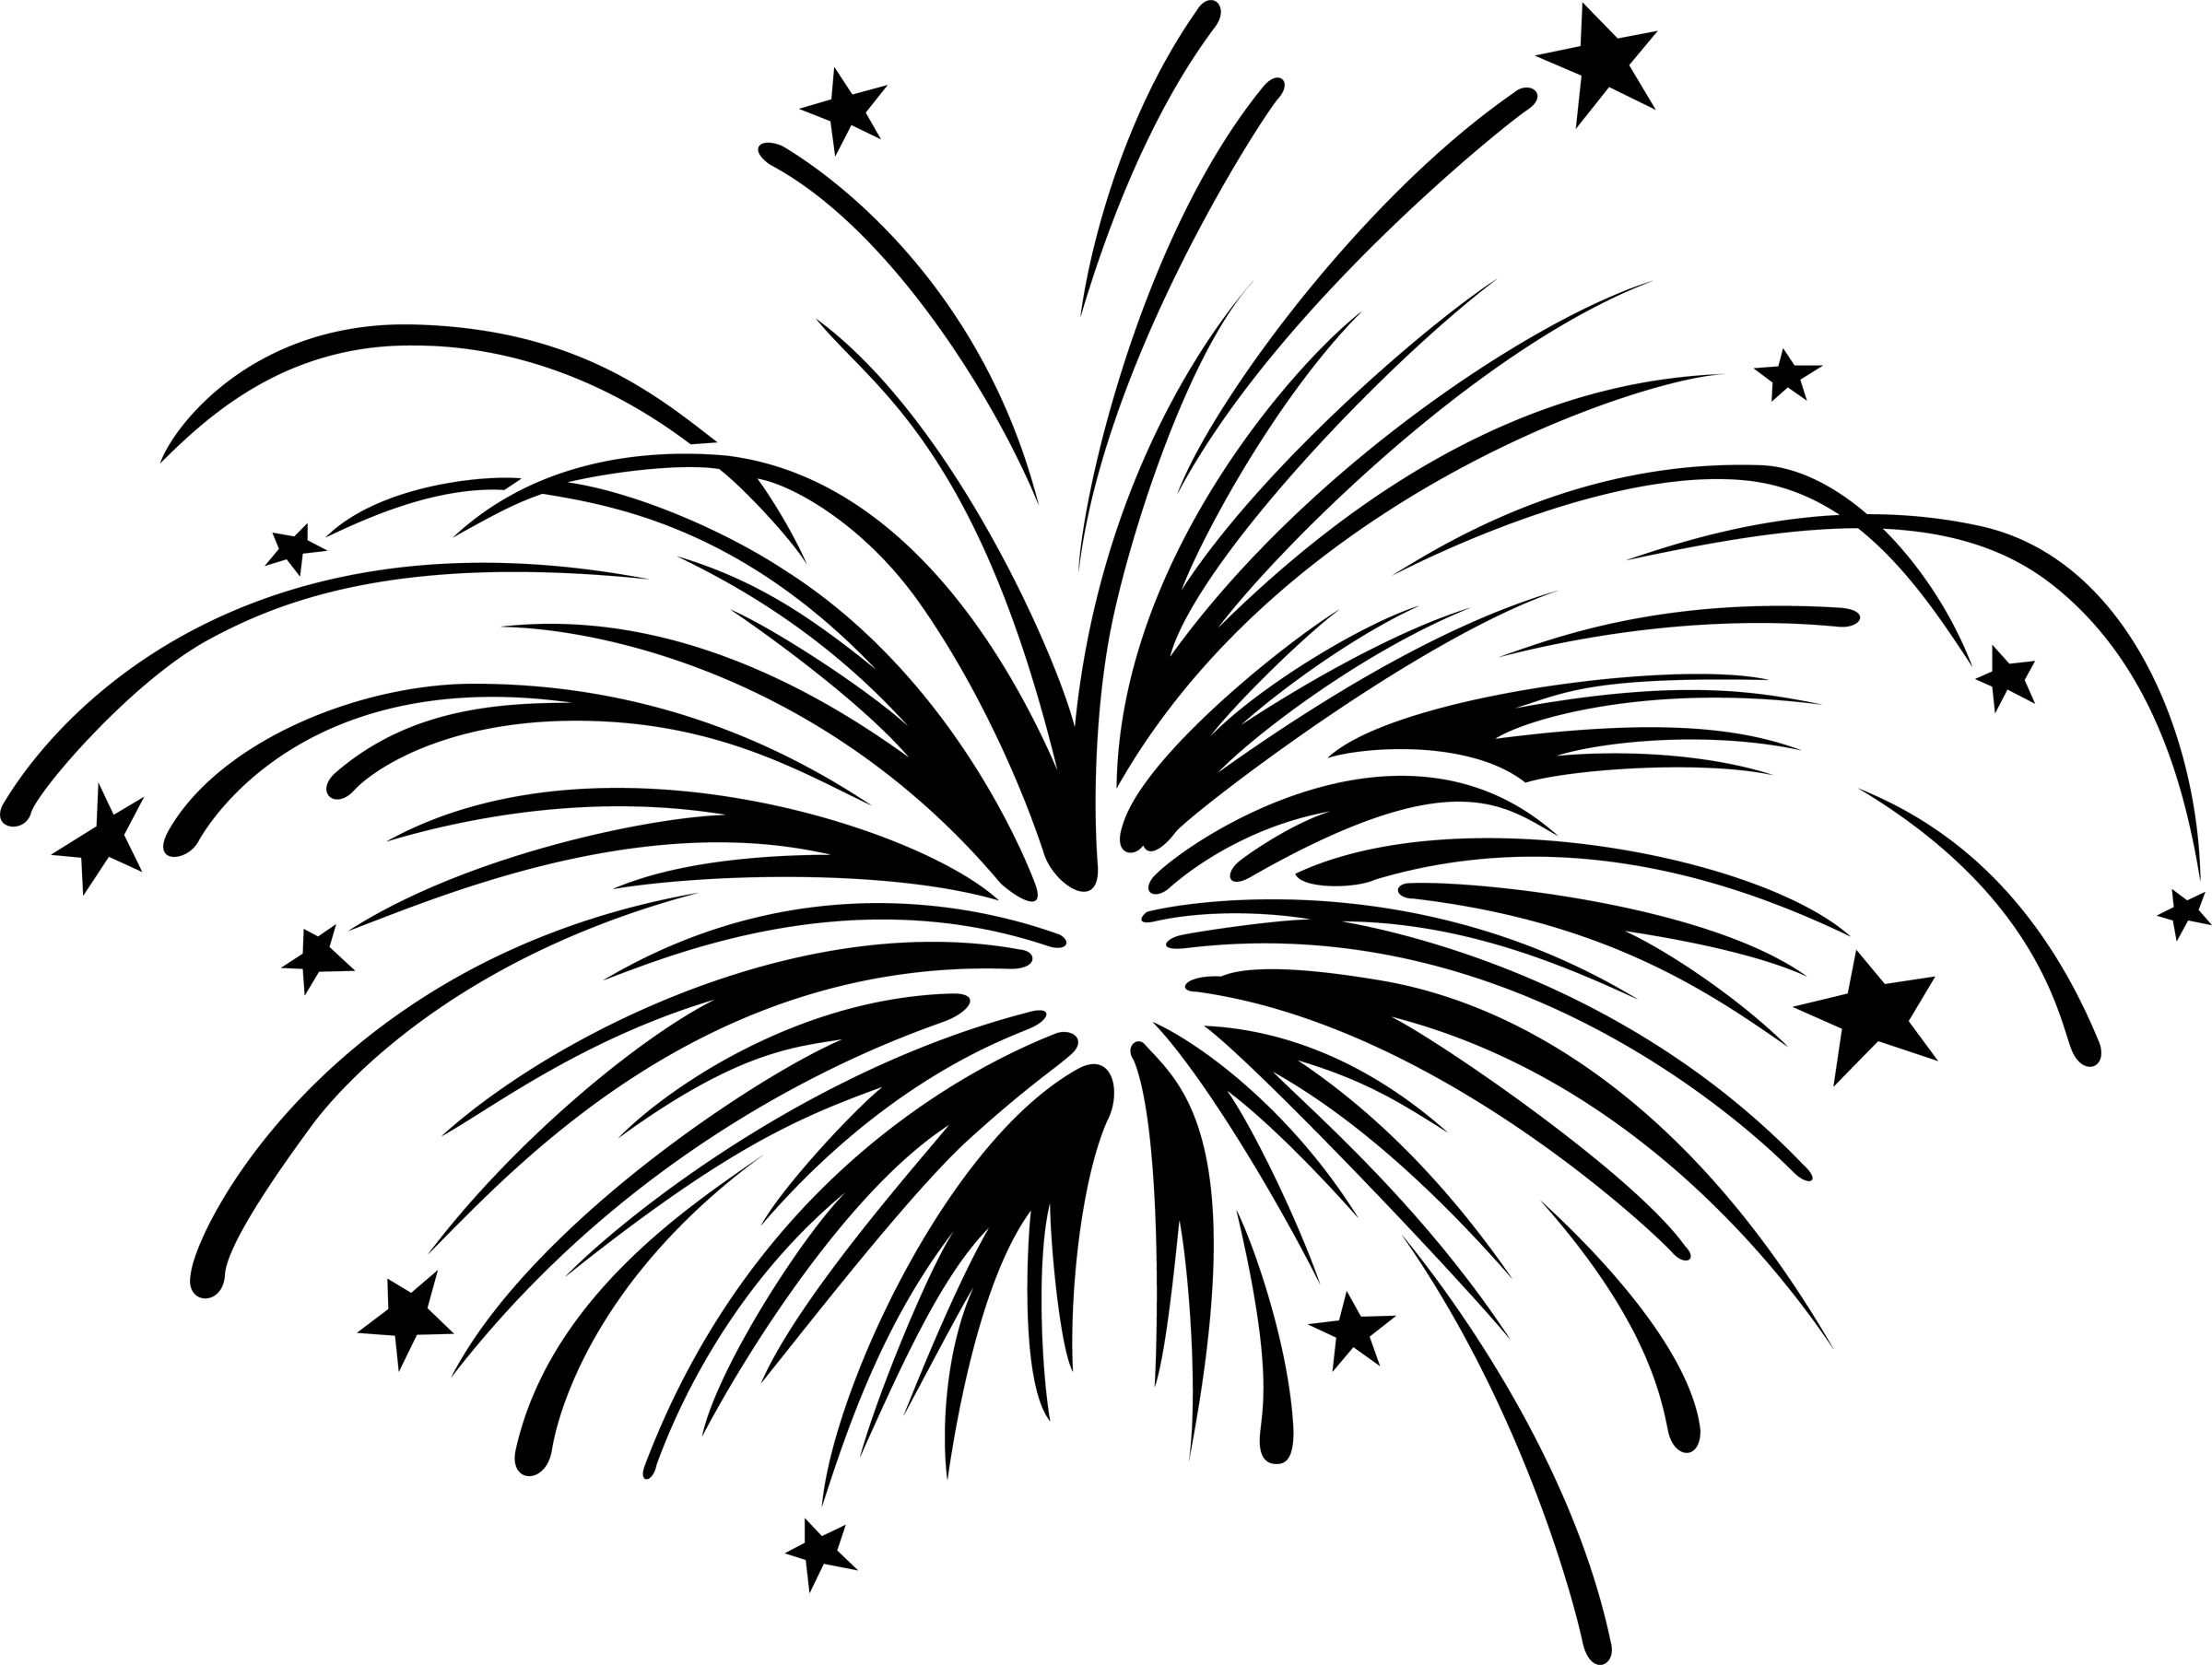 Fireworks Clipart With Animation | Clipart Panda - Free Clipart Images